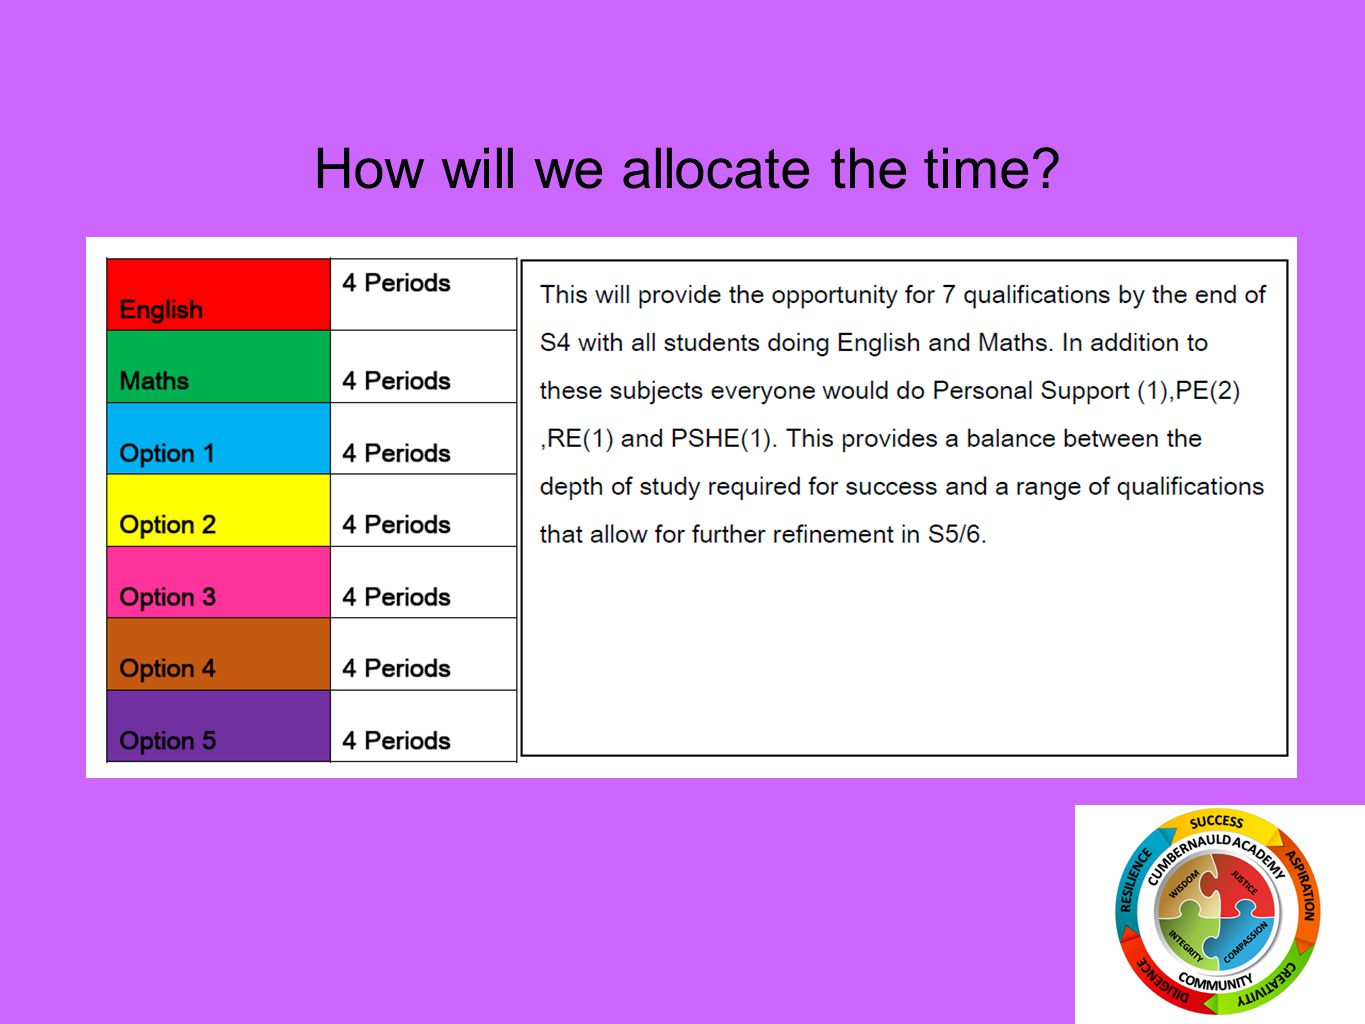 How will we allocate the time